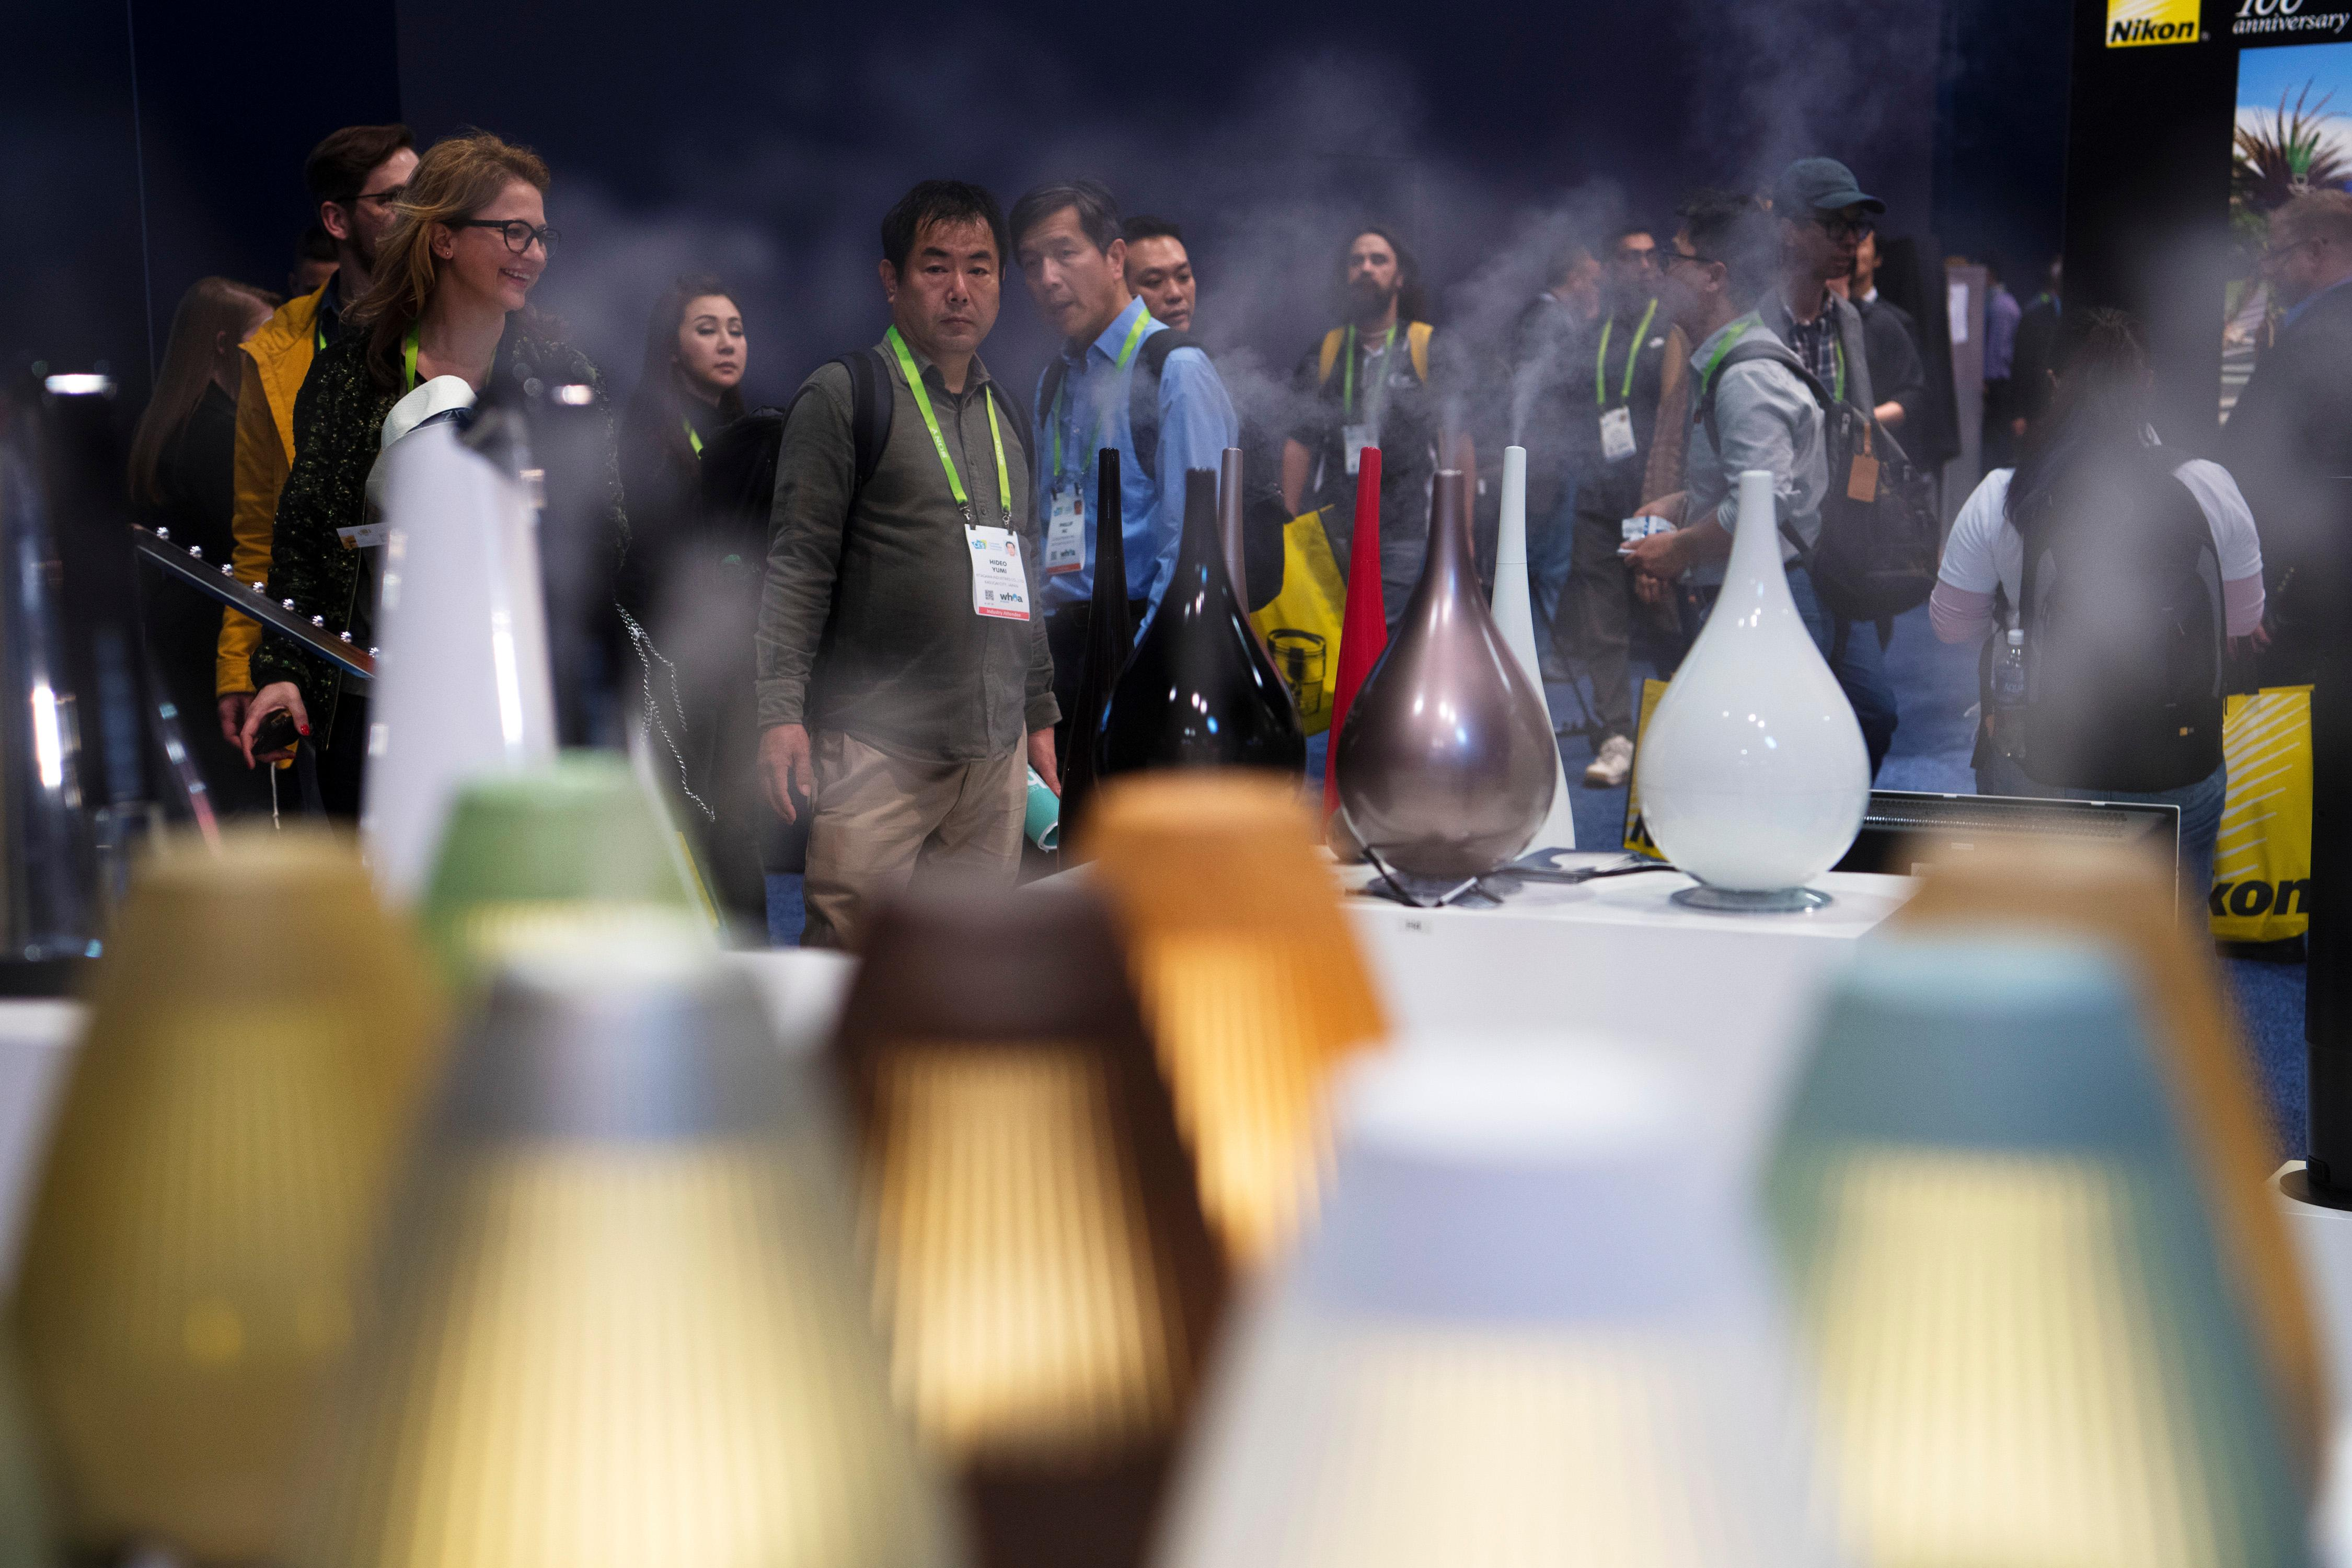 Attendees check out a line of diffusers during the second day of CES Wednesday, January 10, 2018, at the Las Vegas Convention Center. CREDIT: Sam Morris/Las Vegas News Bureau